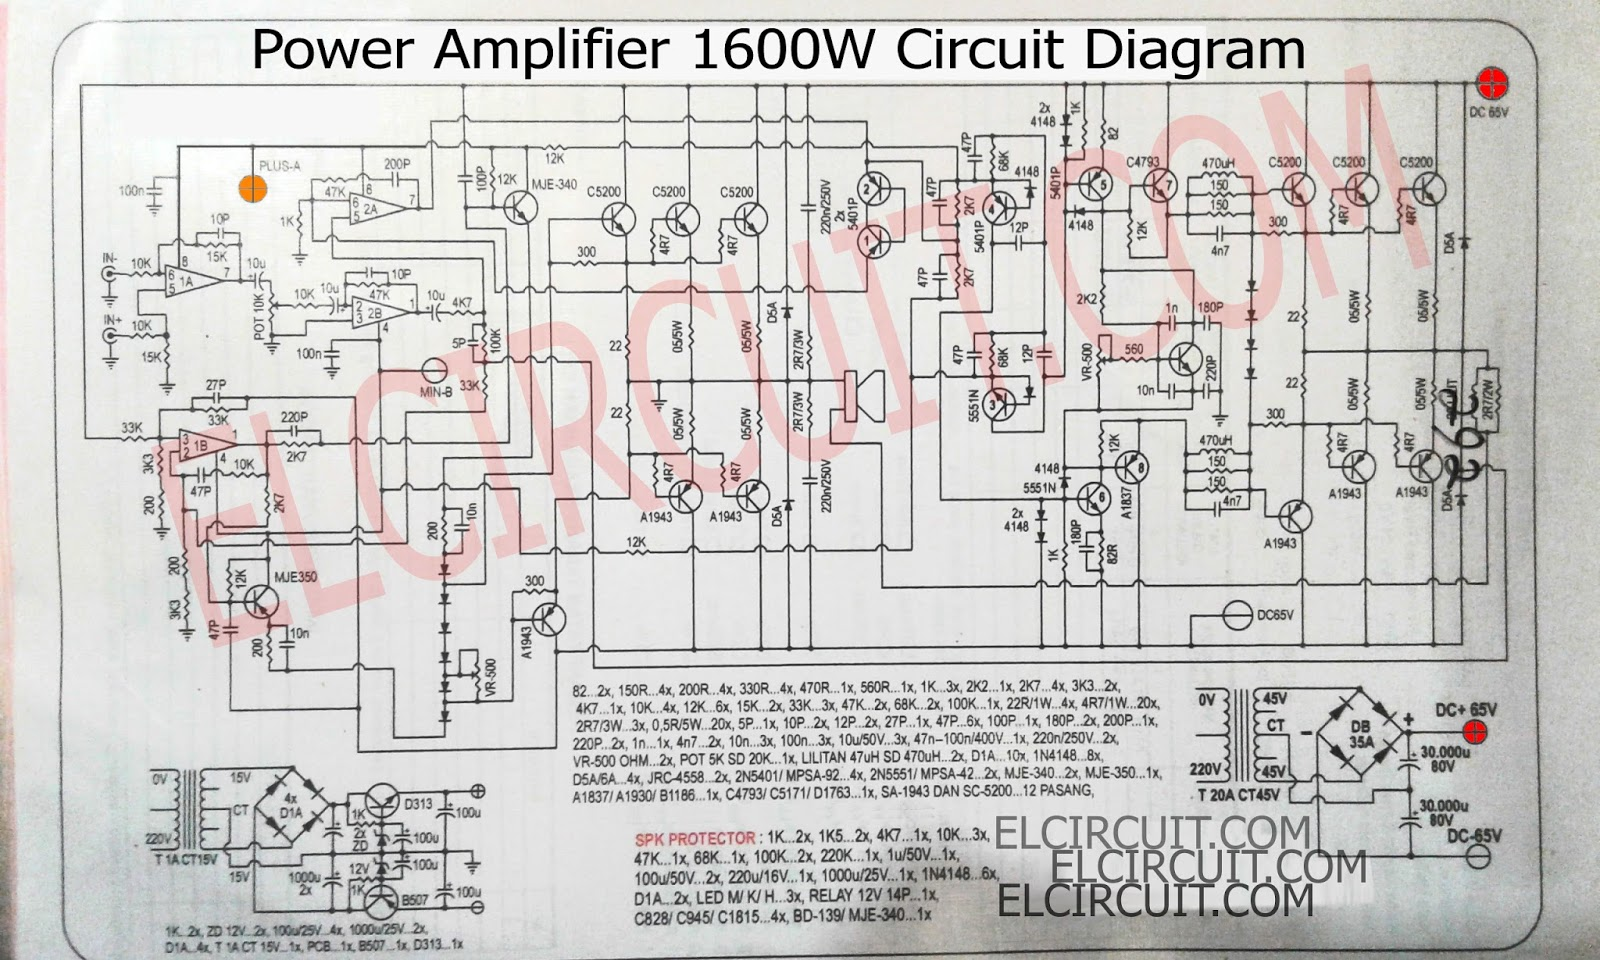 1600W High Power Amplifier Circuit complete PCB Layout - Electronic ...